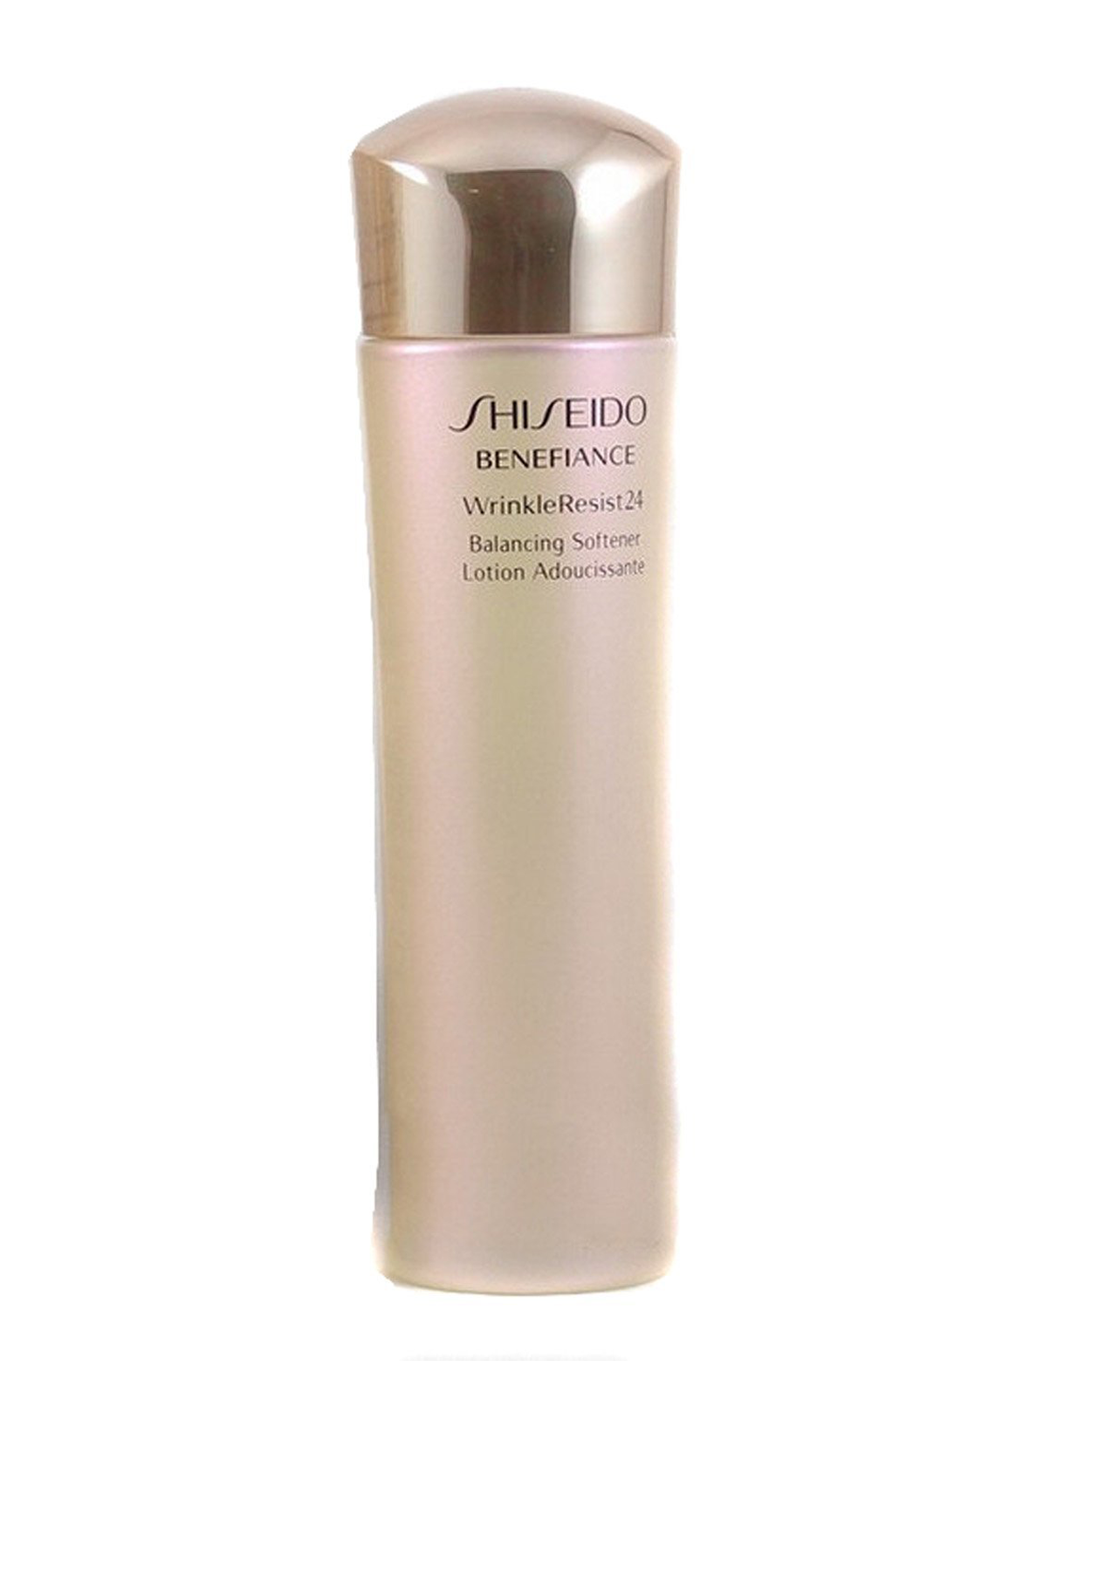 Shiseido Benefiance WrinkleResist24 Balancing Softener Lotion, 150ml